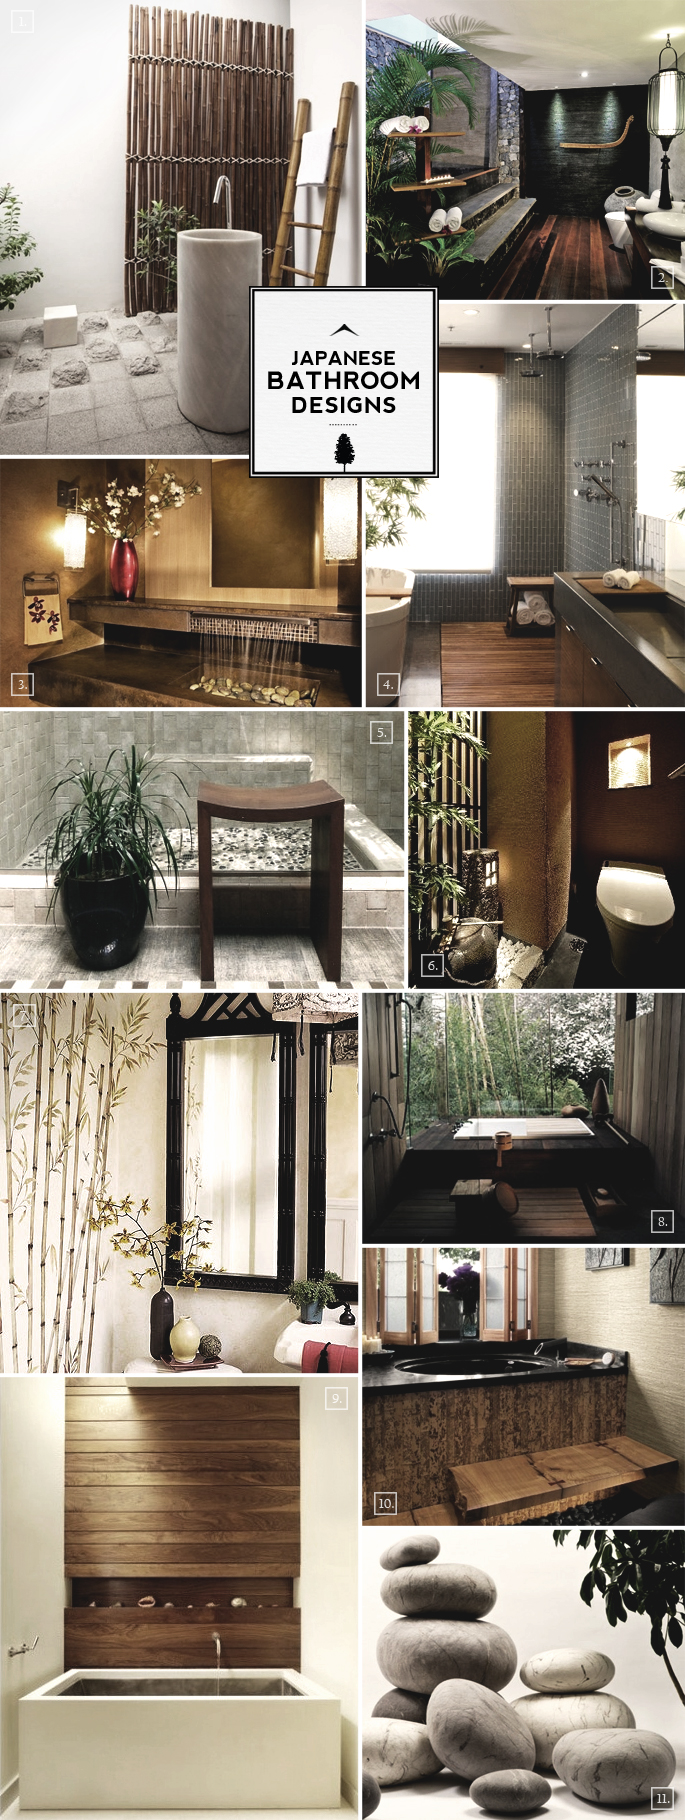 Zen style japanese bathroom design ideas home tree atlas for Bathroom designs japanese style